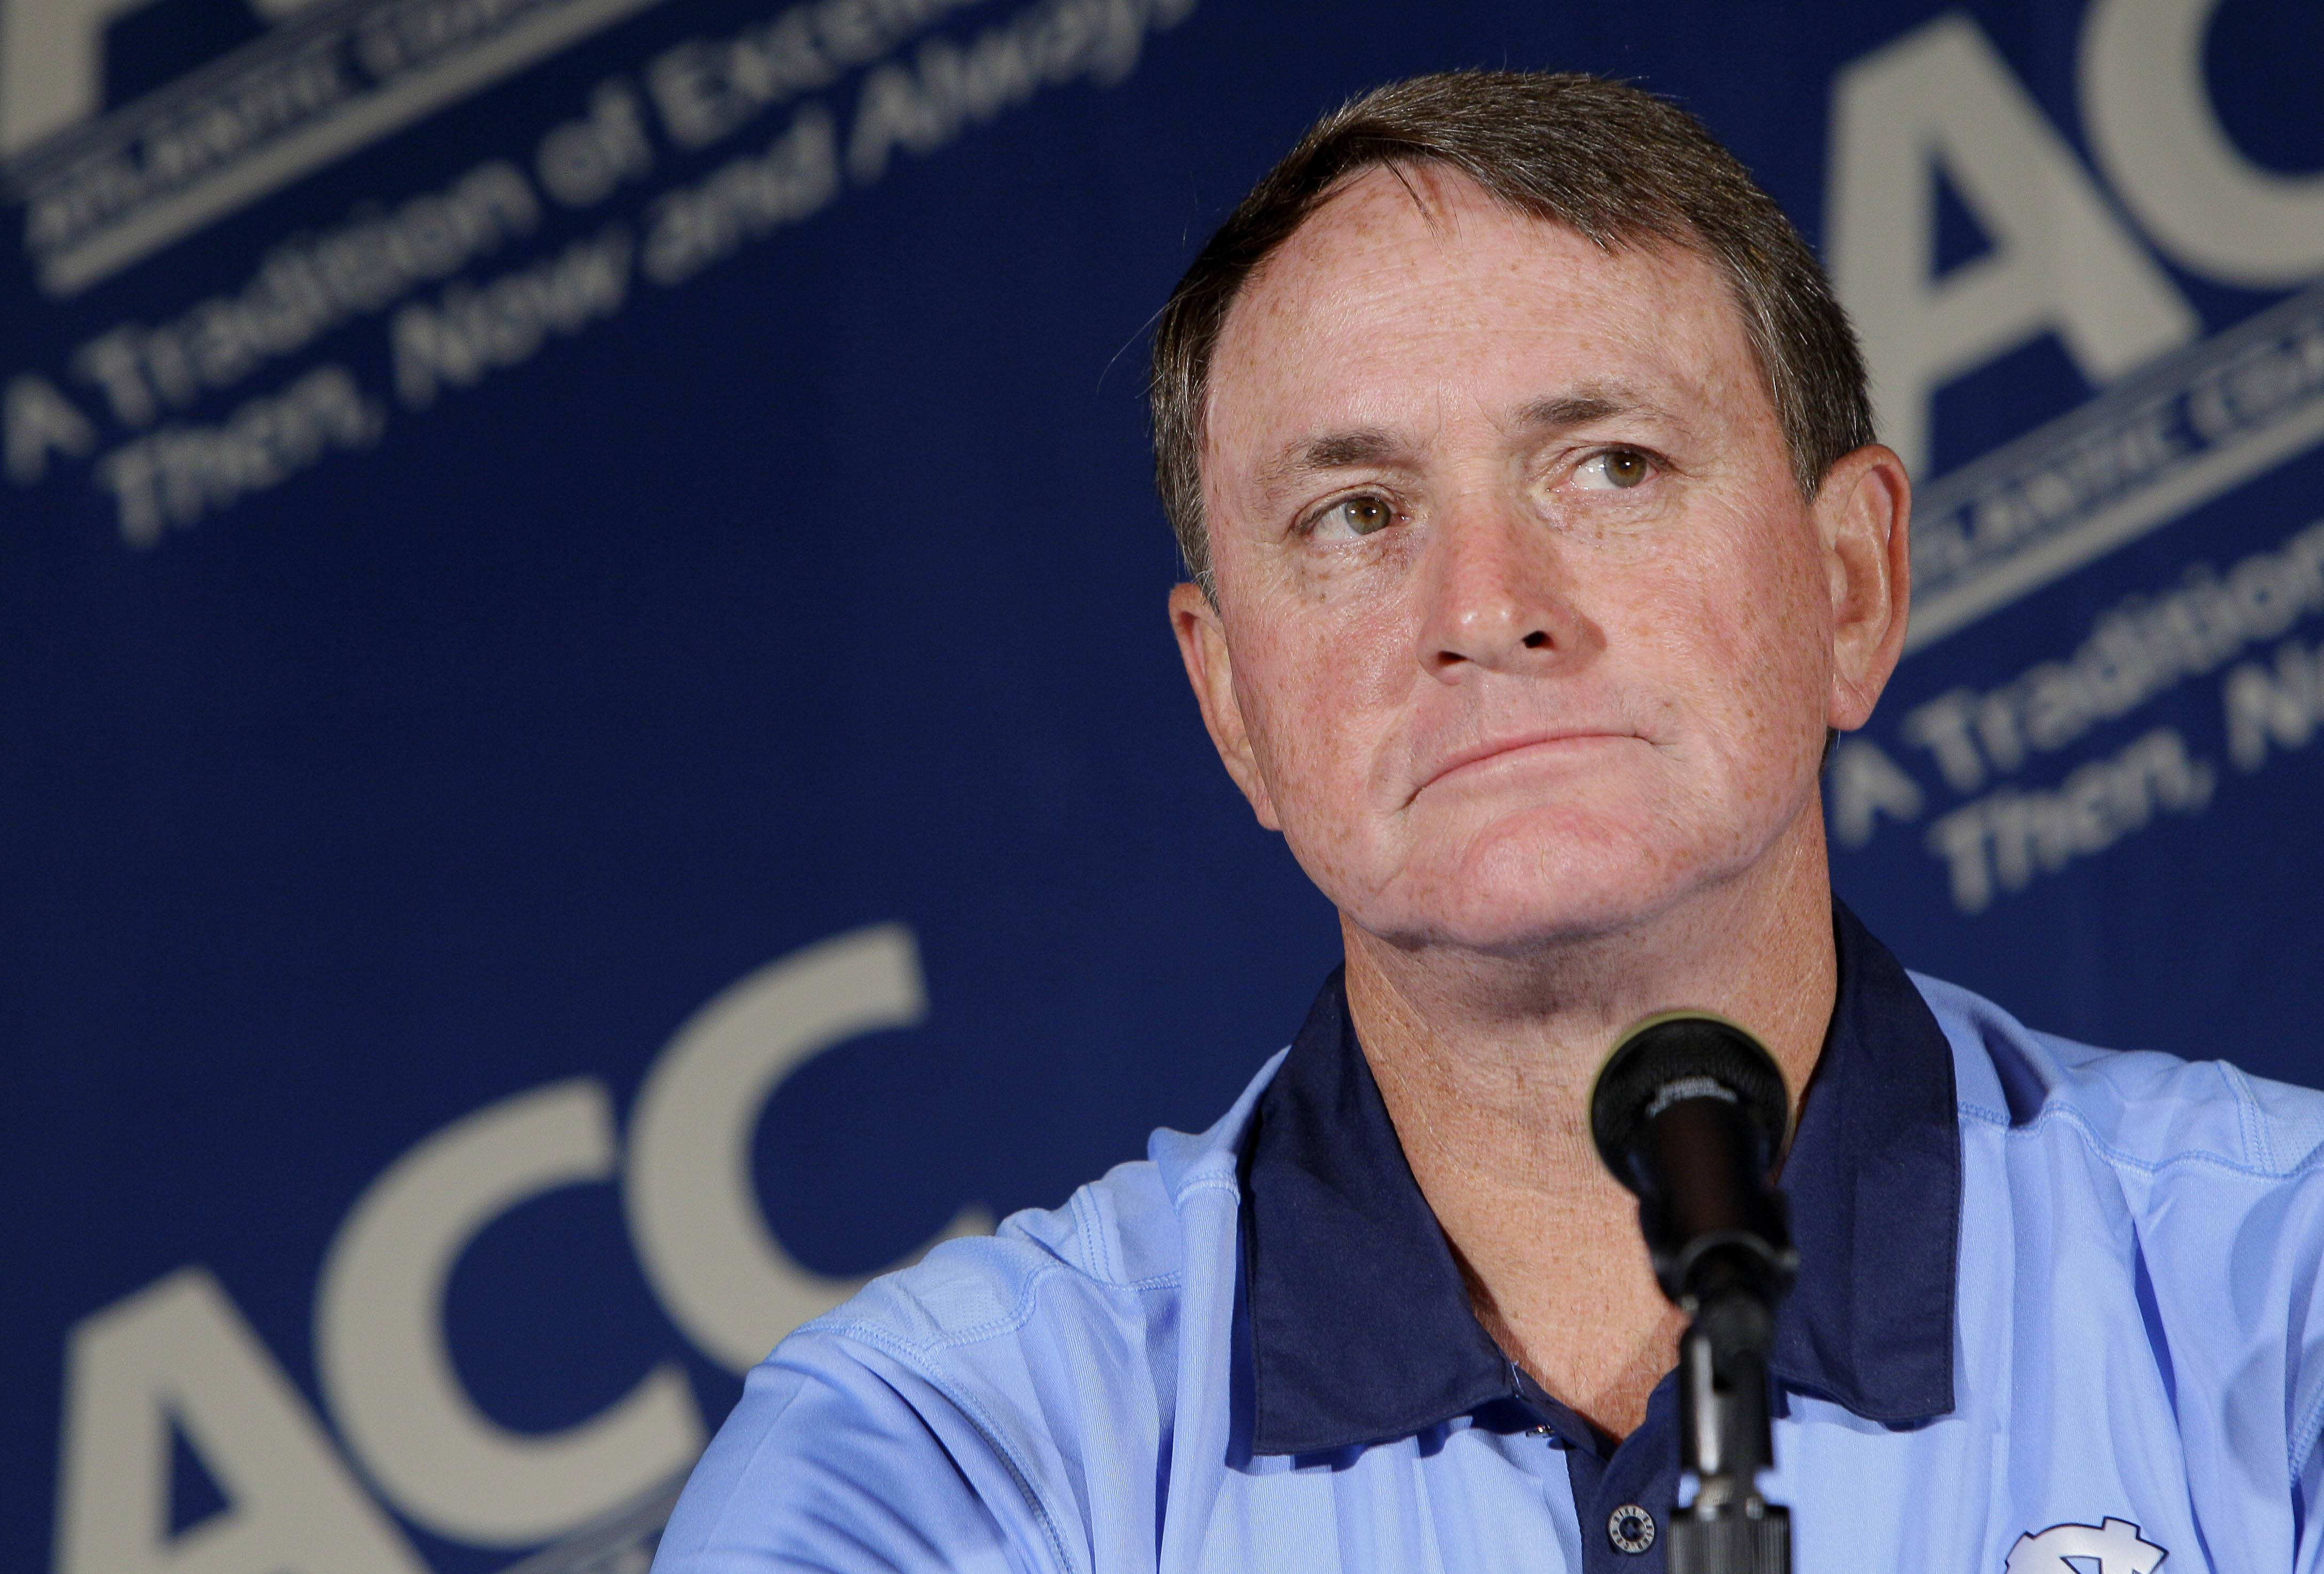 North Carolina coach Butch Davis pauses during interviews at the Atlantic Coast Conference Football Kickoff Monday in Pinehurst, N.C. University of North Carolina Chancellor Holden Thorp announced Wednesday that Davis has been dismissed as head coach of the football program.